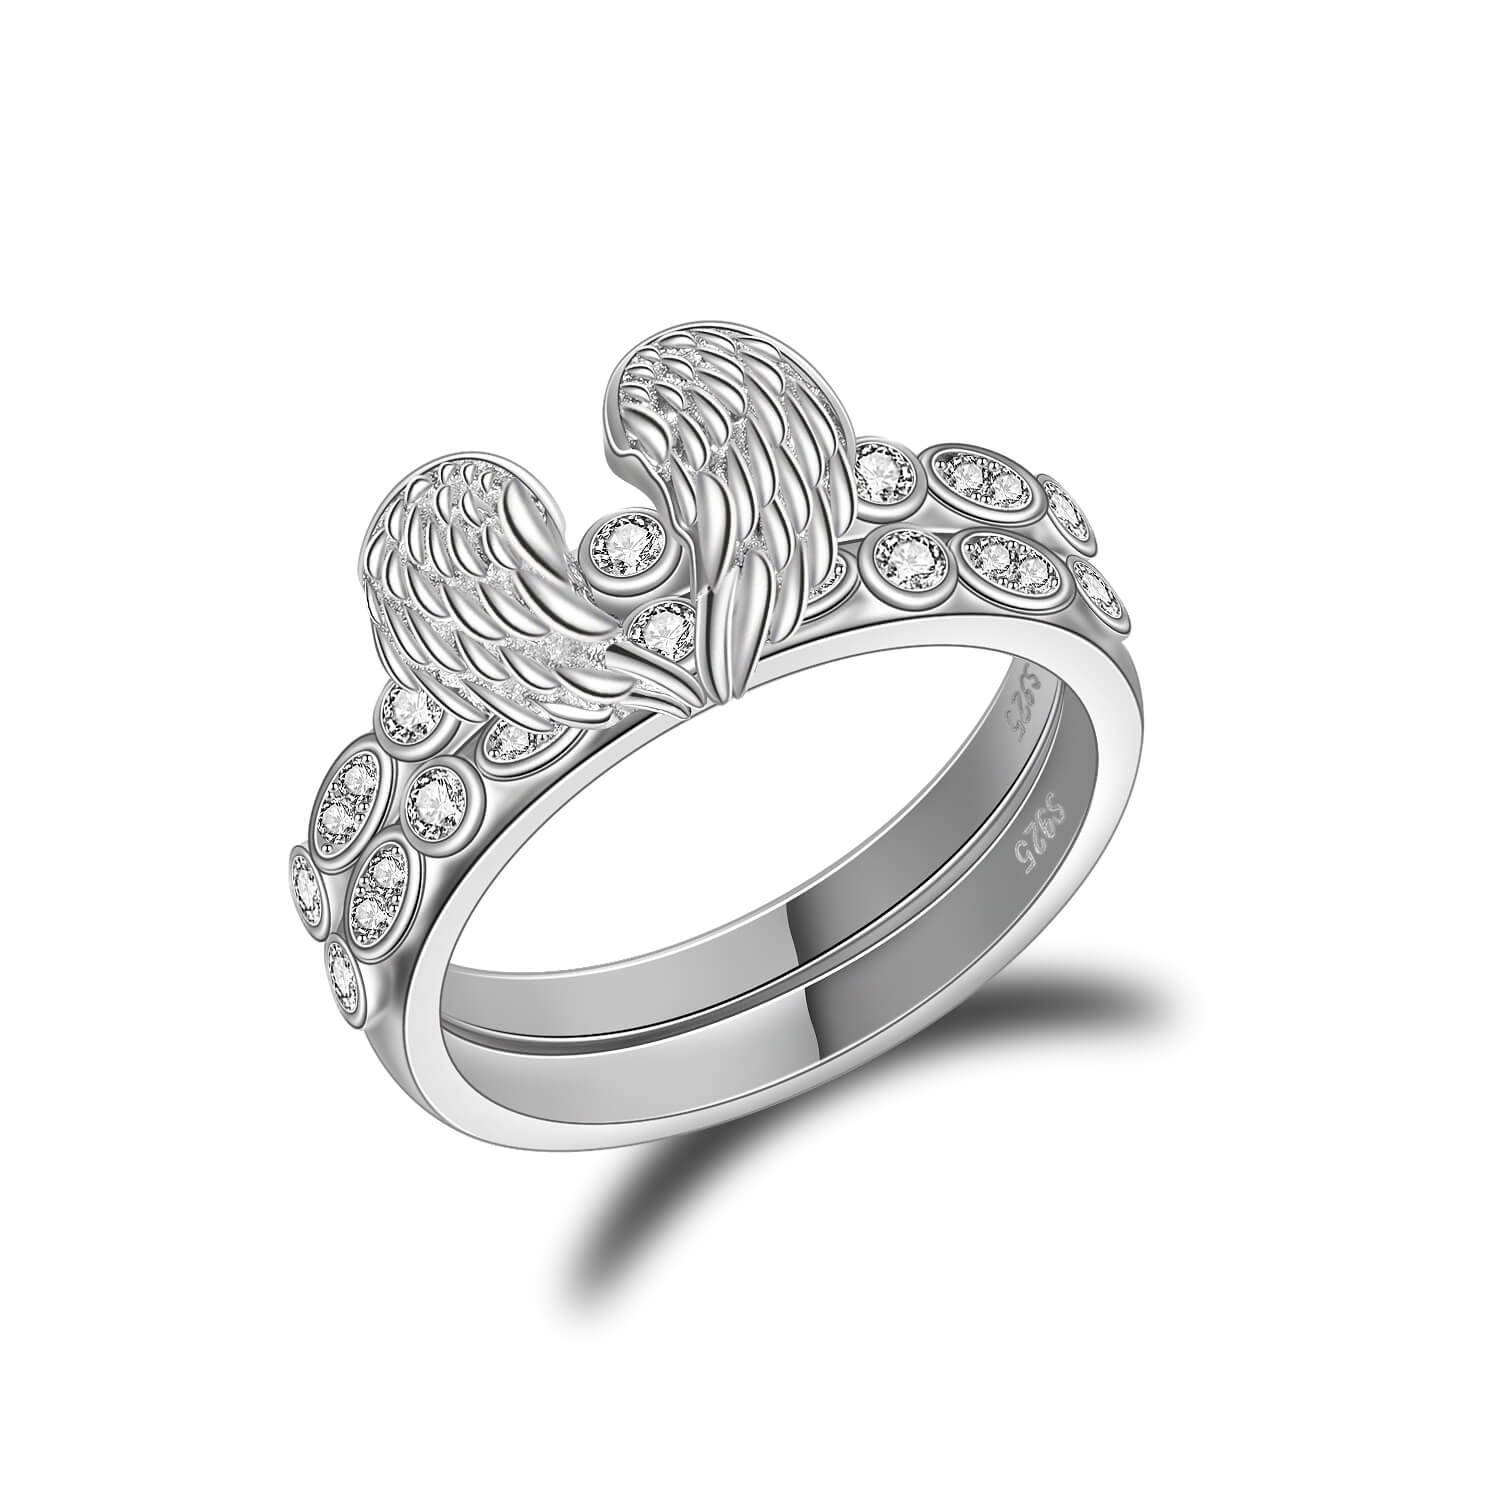 925 Sterling Silver Guardian Angel Wings Ring, Separable Ring Set